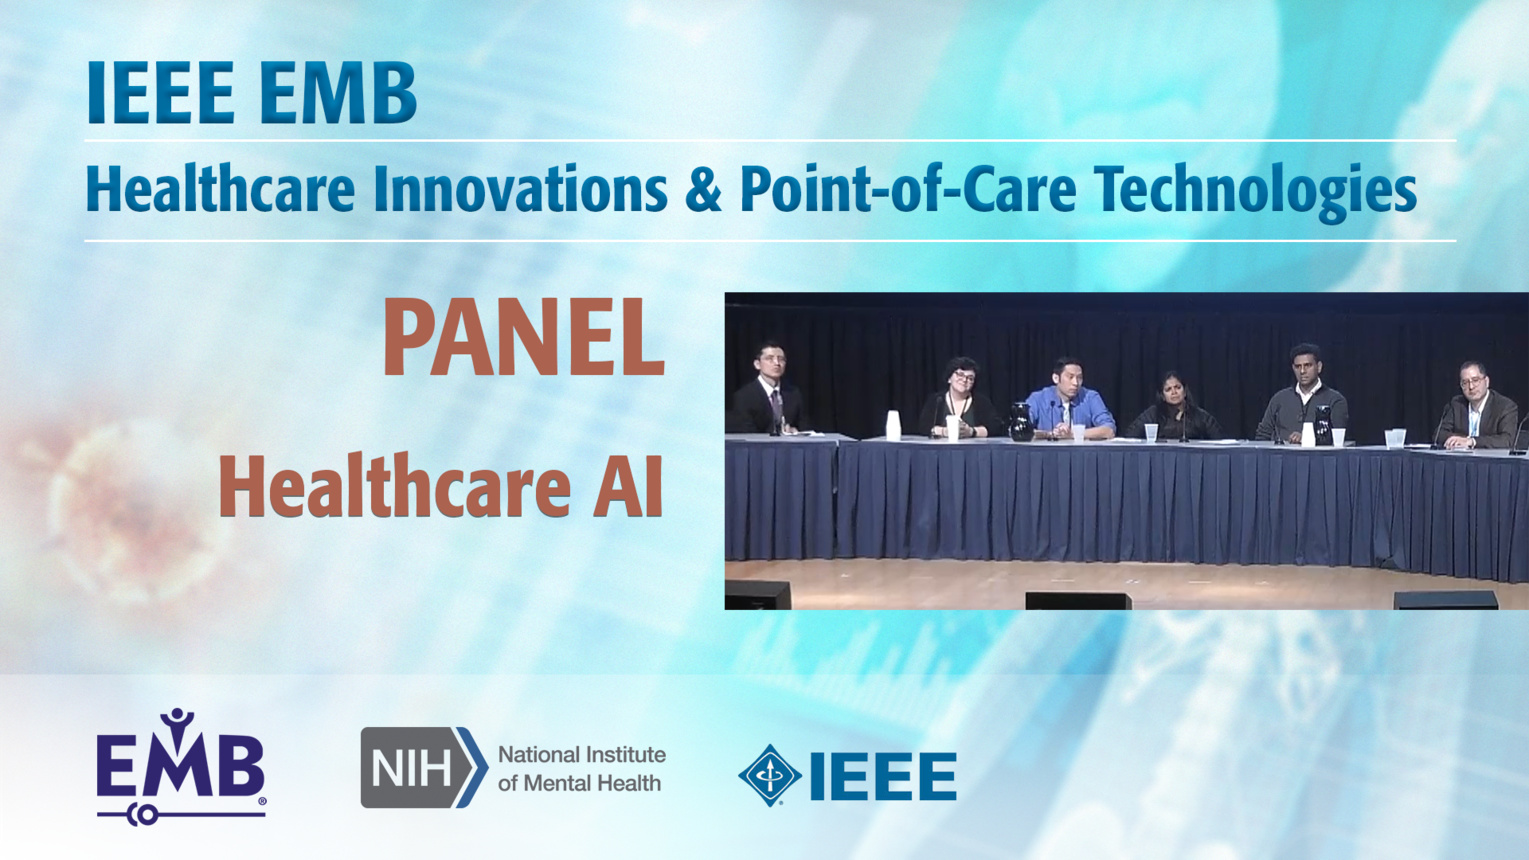 Panel: Healthcare AI for the Clinical Environment - IEEE EMBS at NIH, 2019